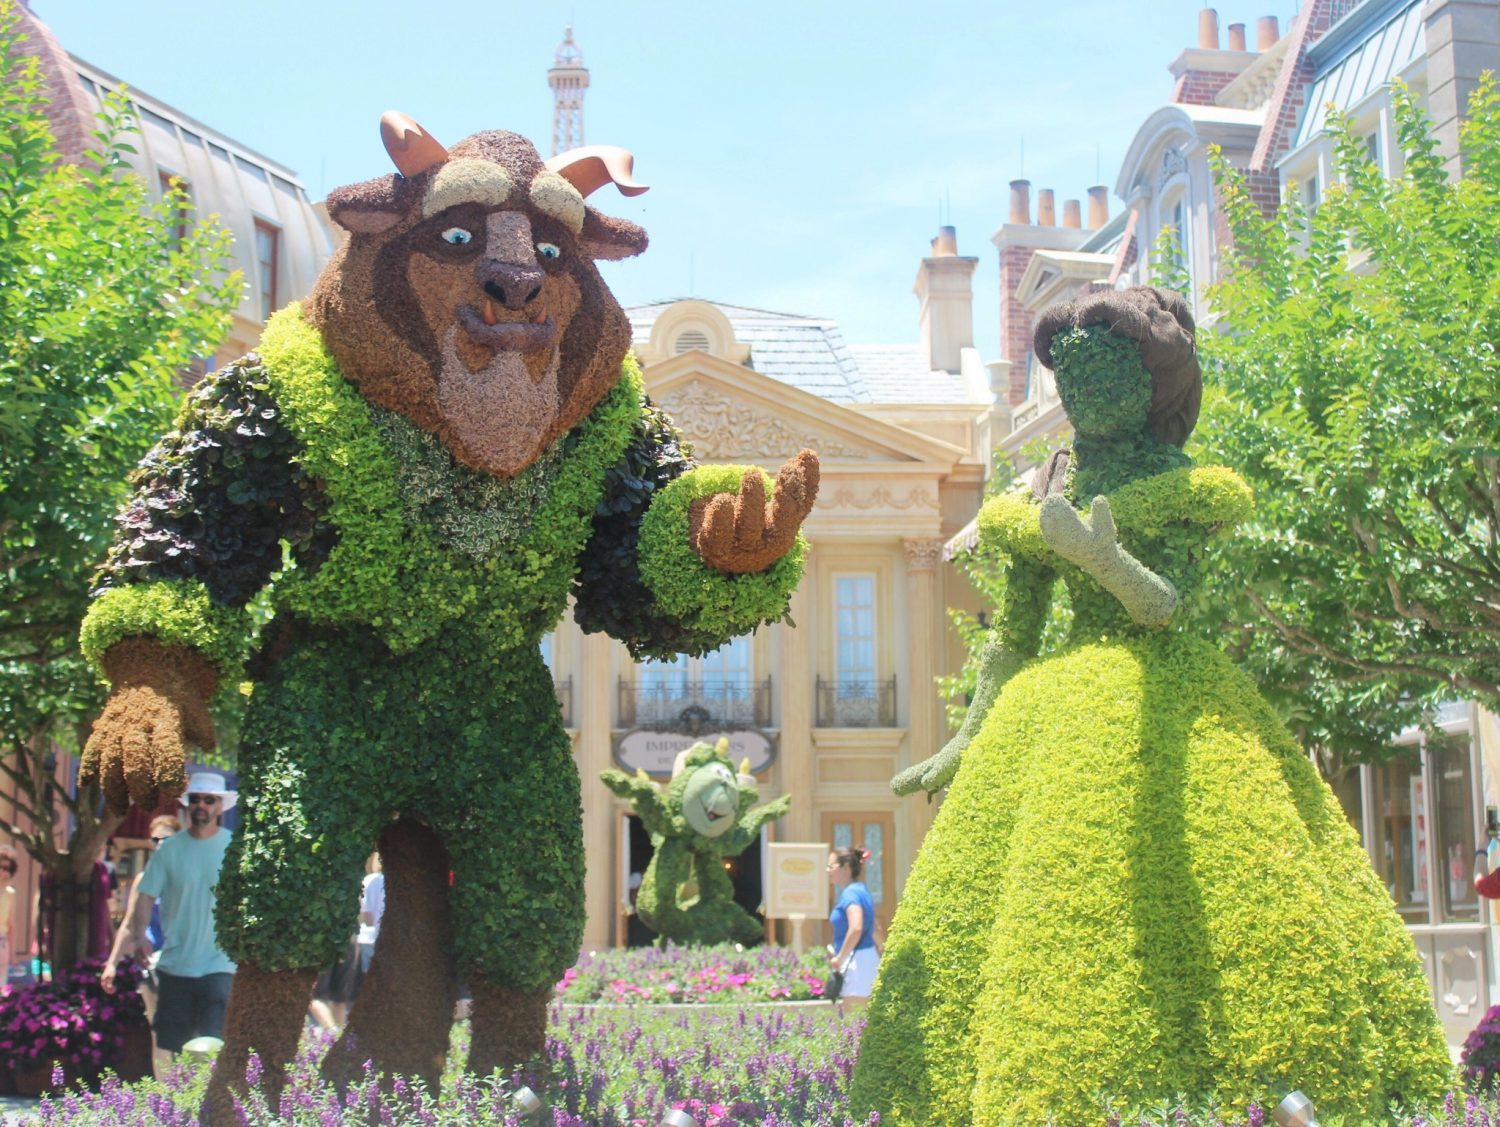 Epcot International Flower and Garden Festival Beauty and the Beast